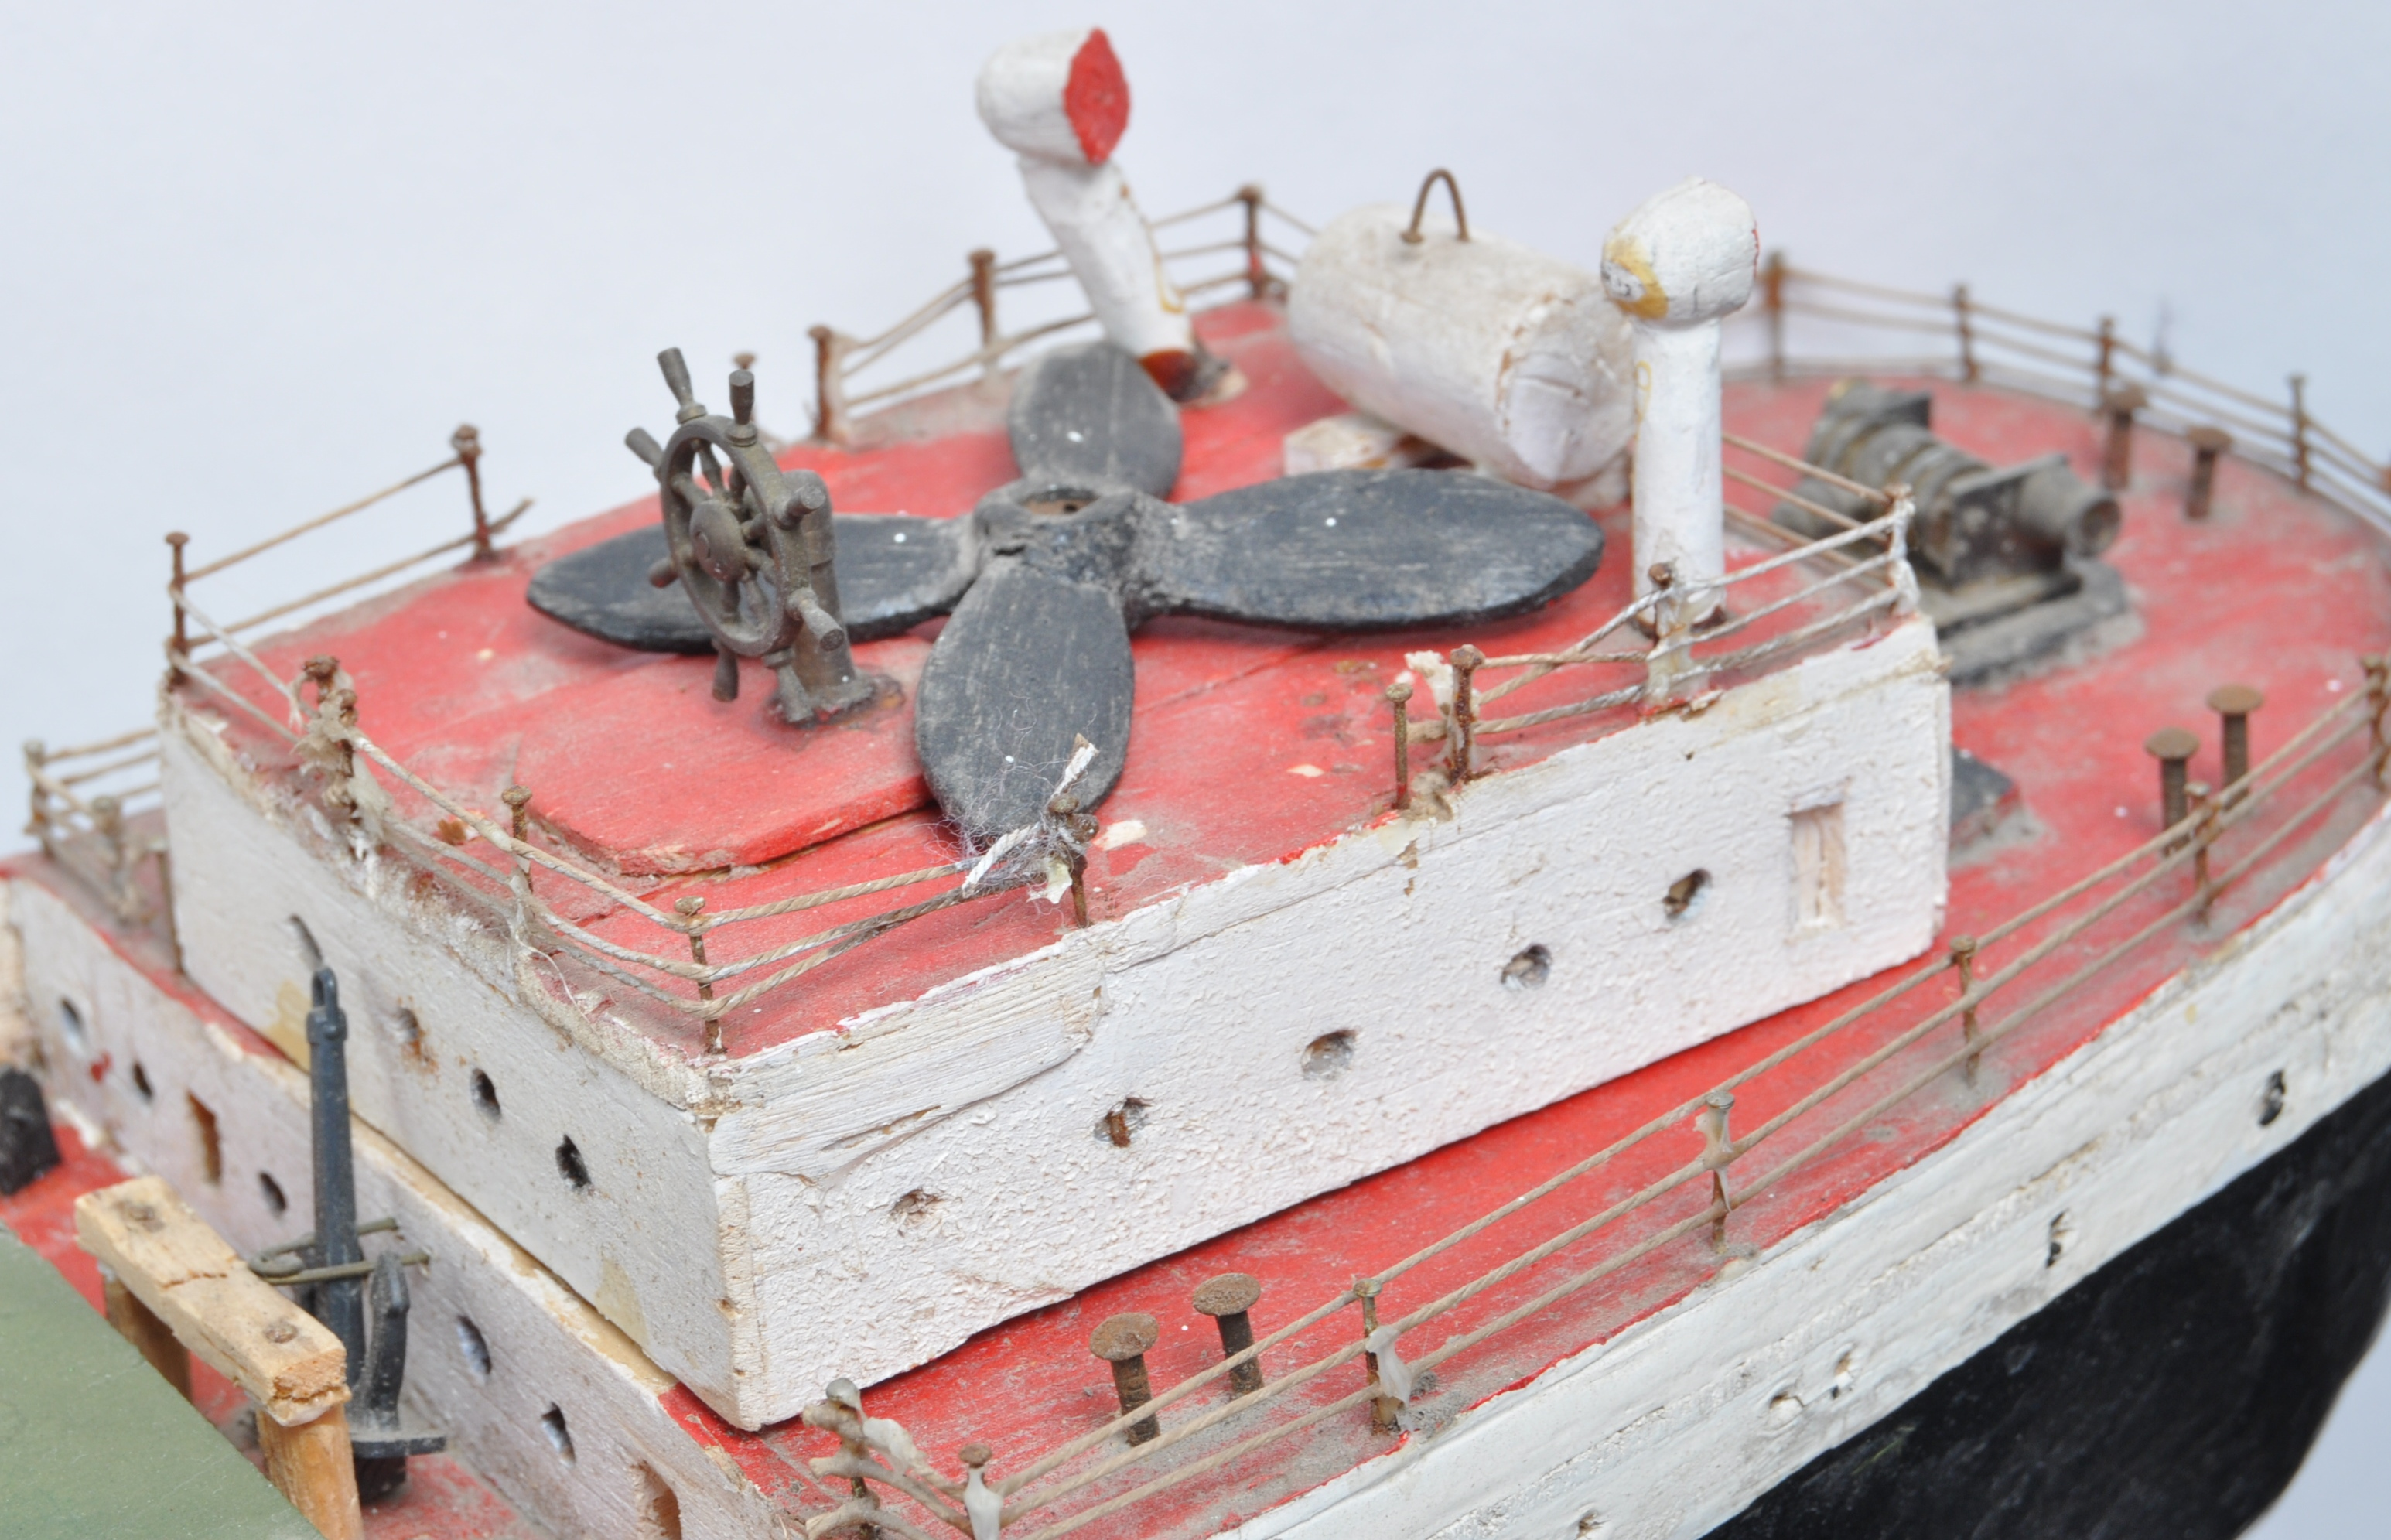 SHIPPING - RADIO CONTROLLED SCALE MODEL ' FORT INDUS ' CARGO SHIP - Image 7 of 11